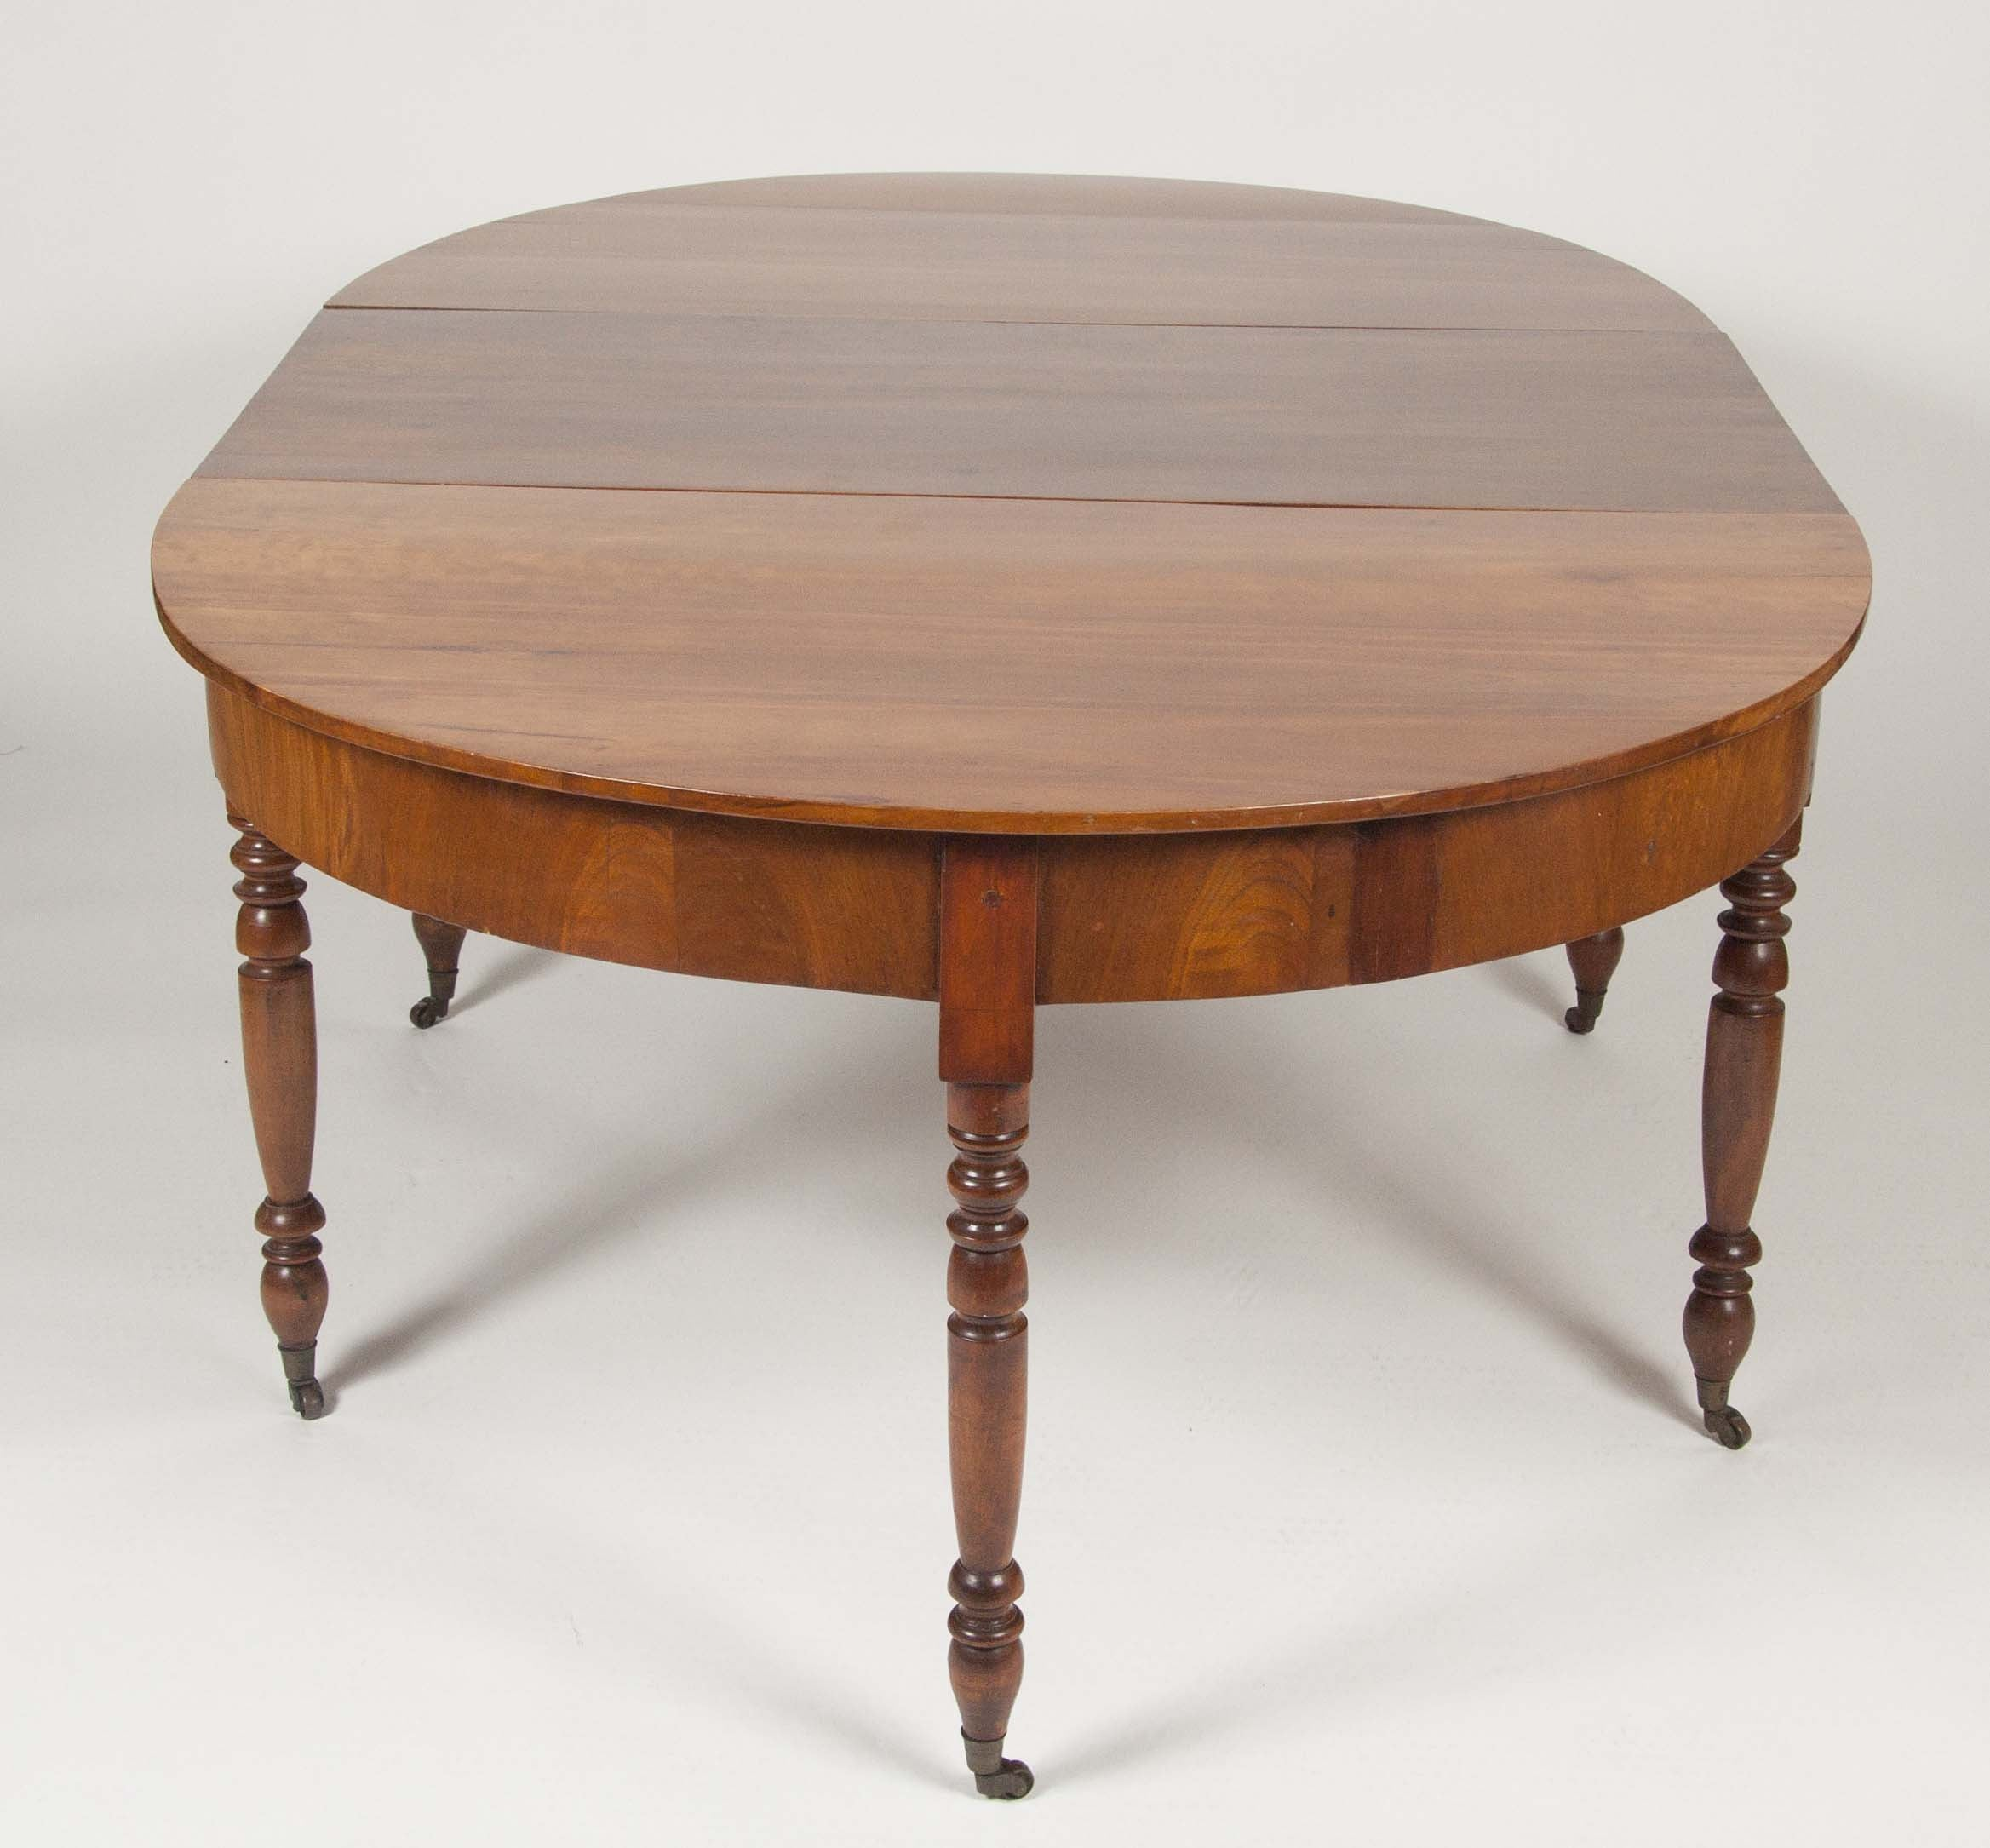 Pennsylvania Sheraton Cherry Wood Oval Table